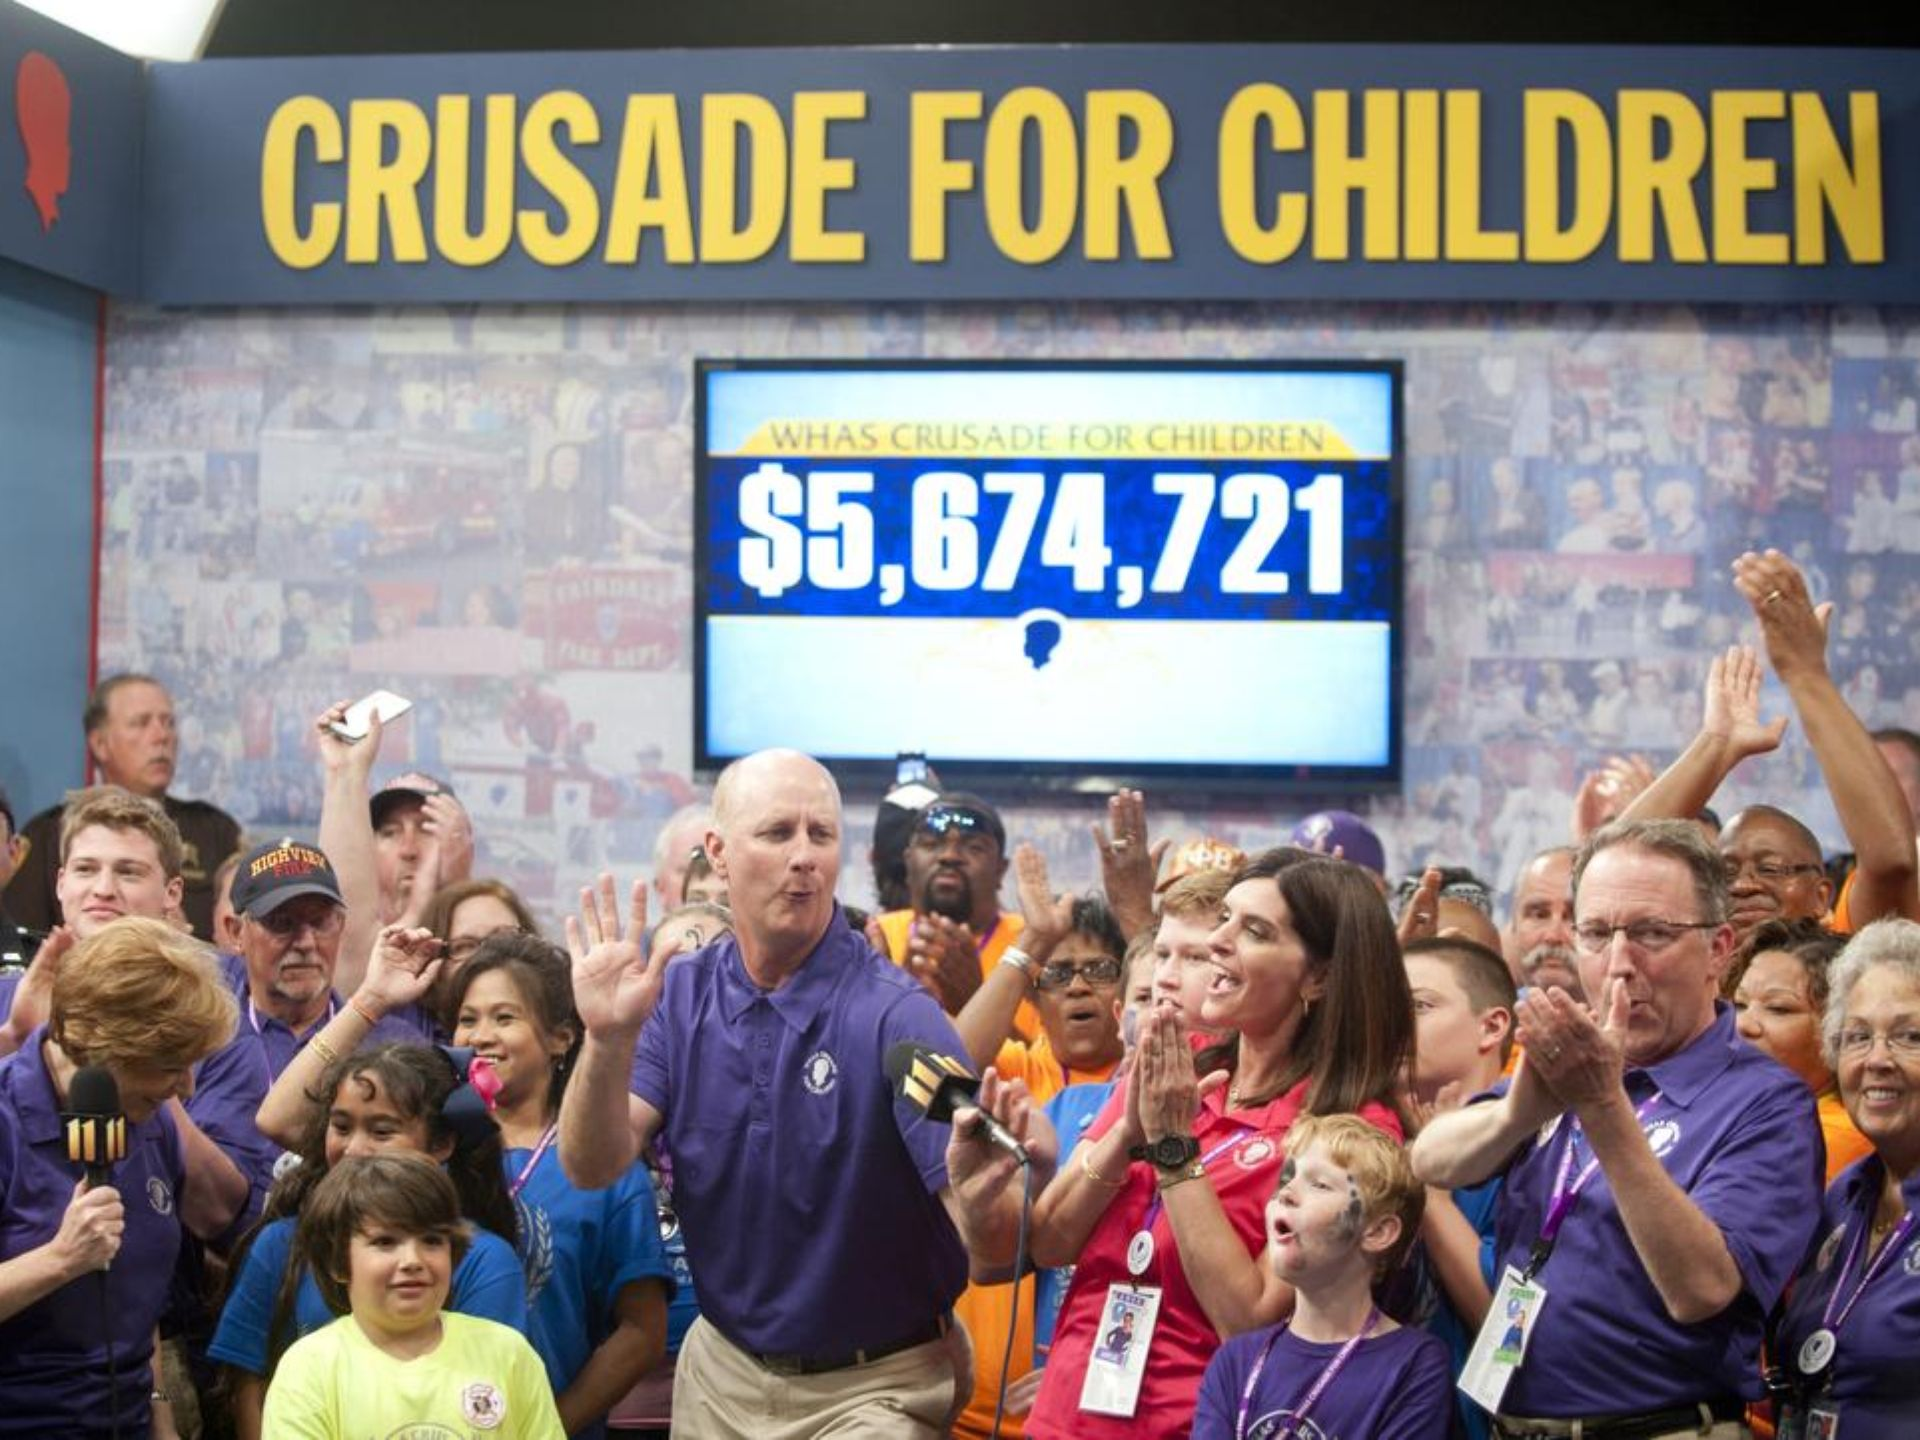 Volunteers celebrate the closing of the 2015 WHAS Crusade for Children (photo: David R. Lutman, The Courier-Journal)